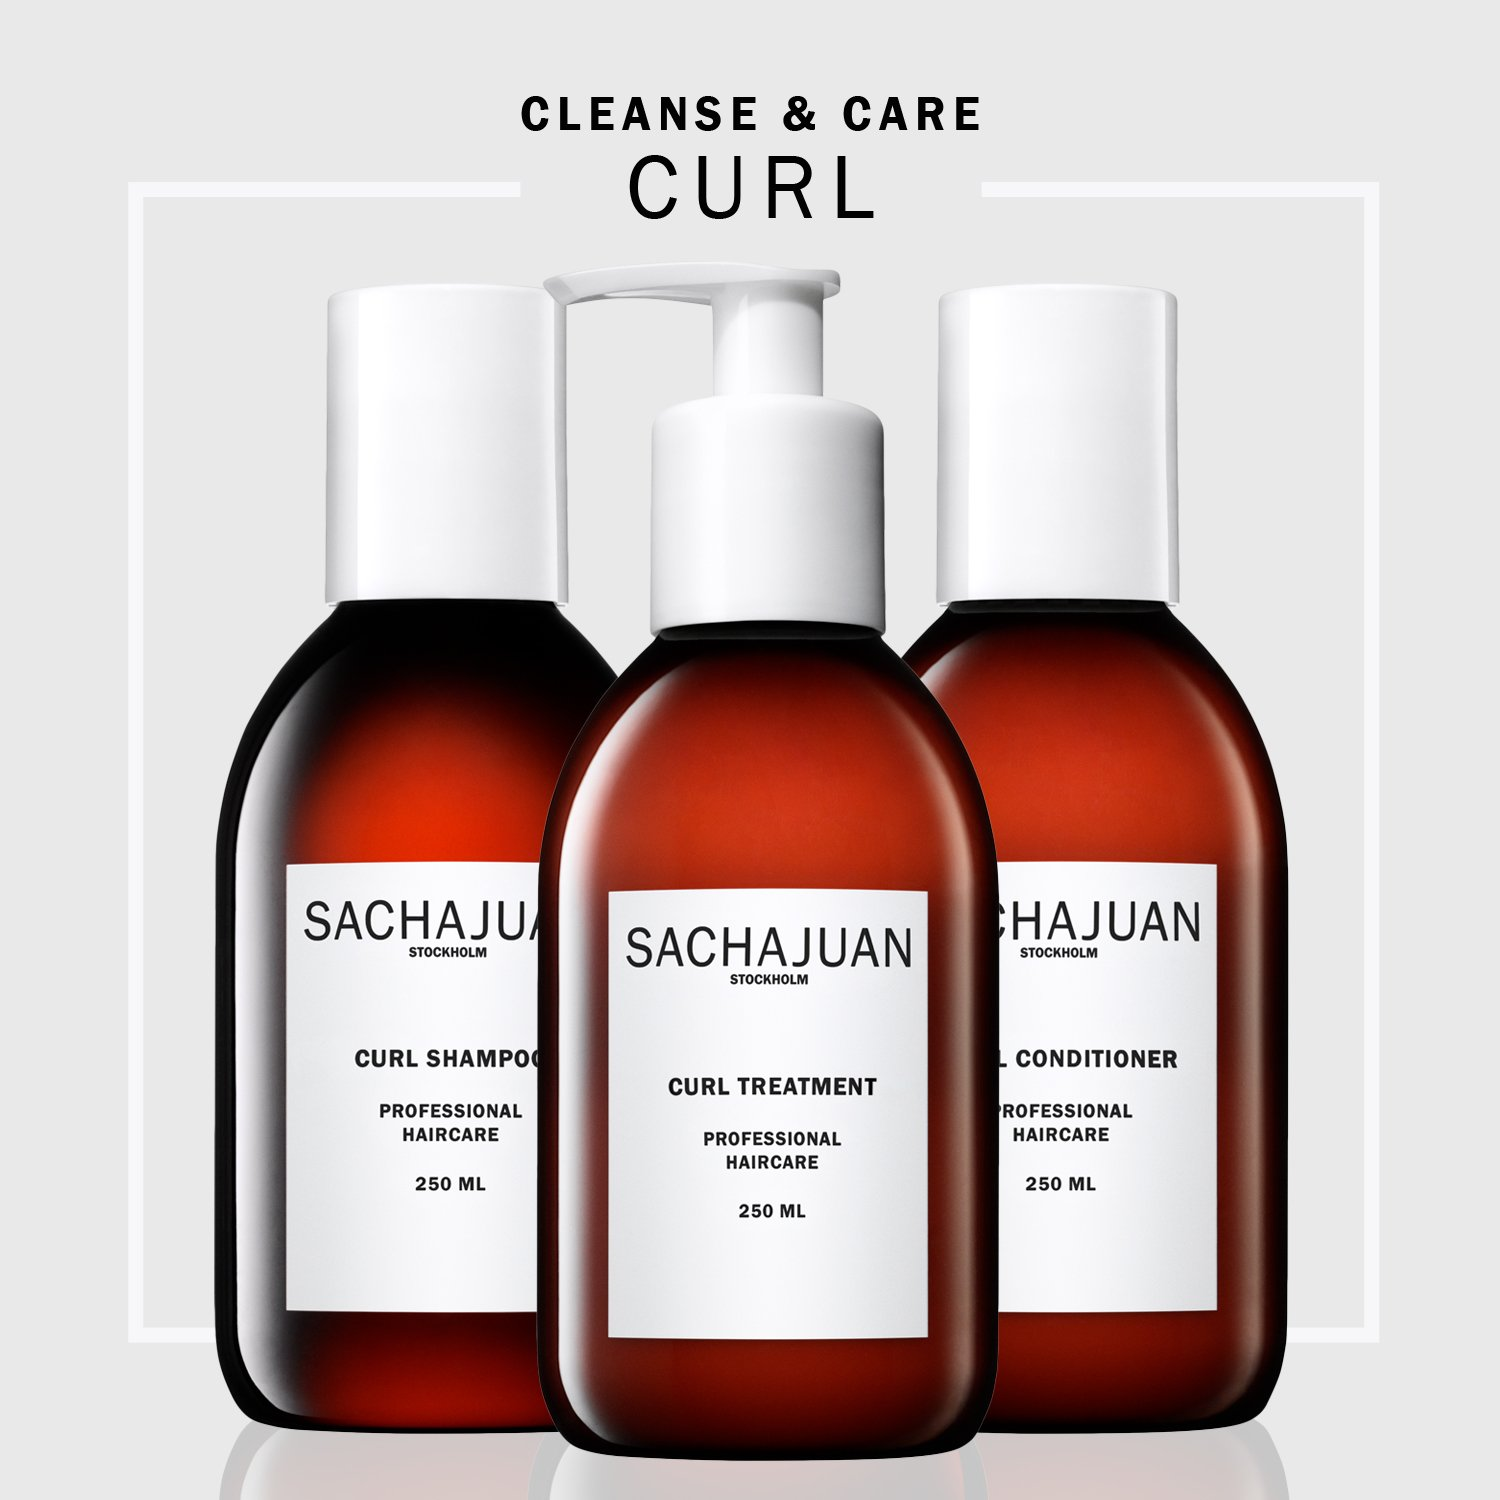 SACHAJUAN Curl Treatment You'll Love